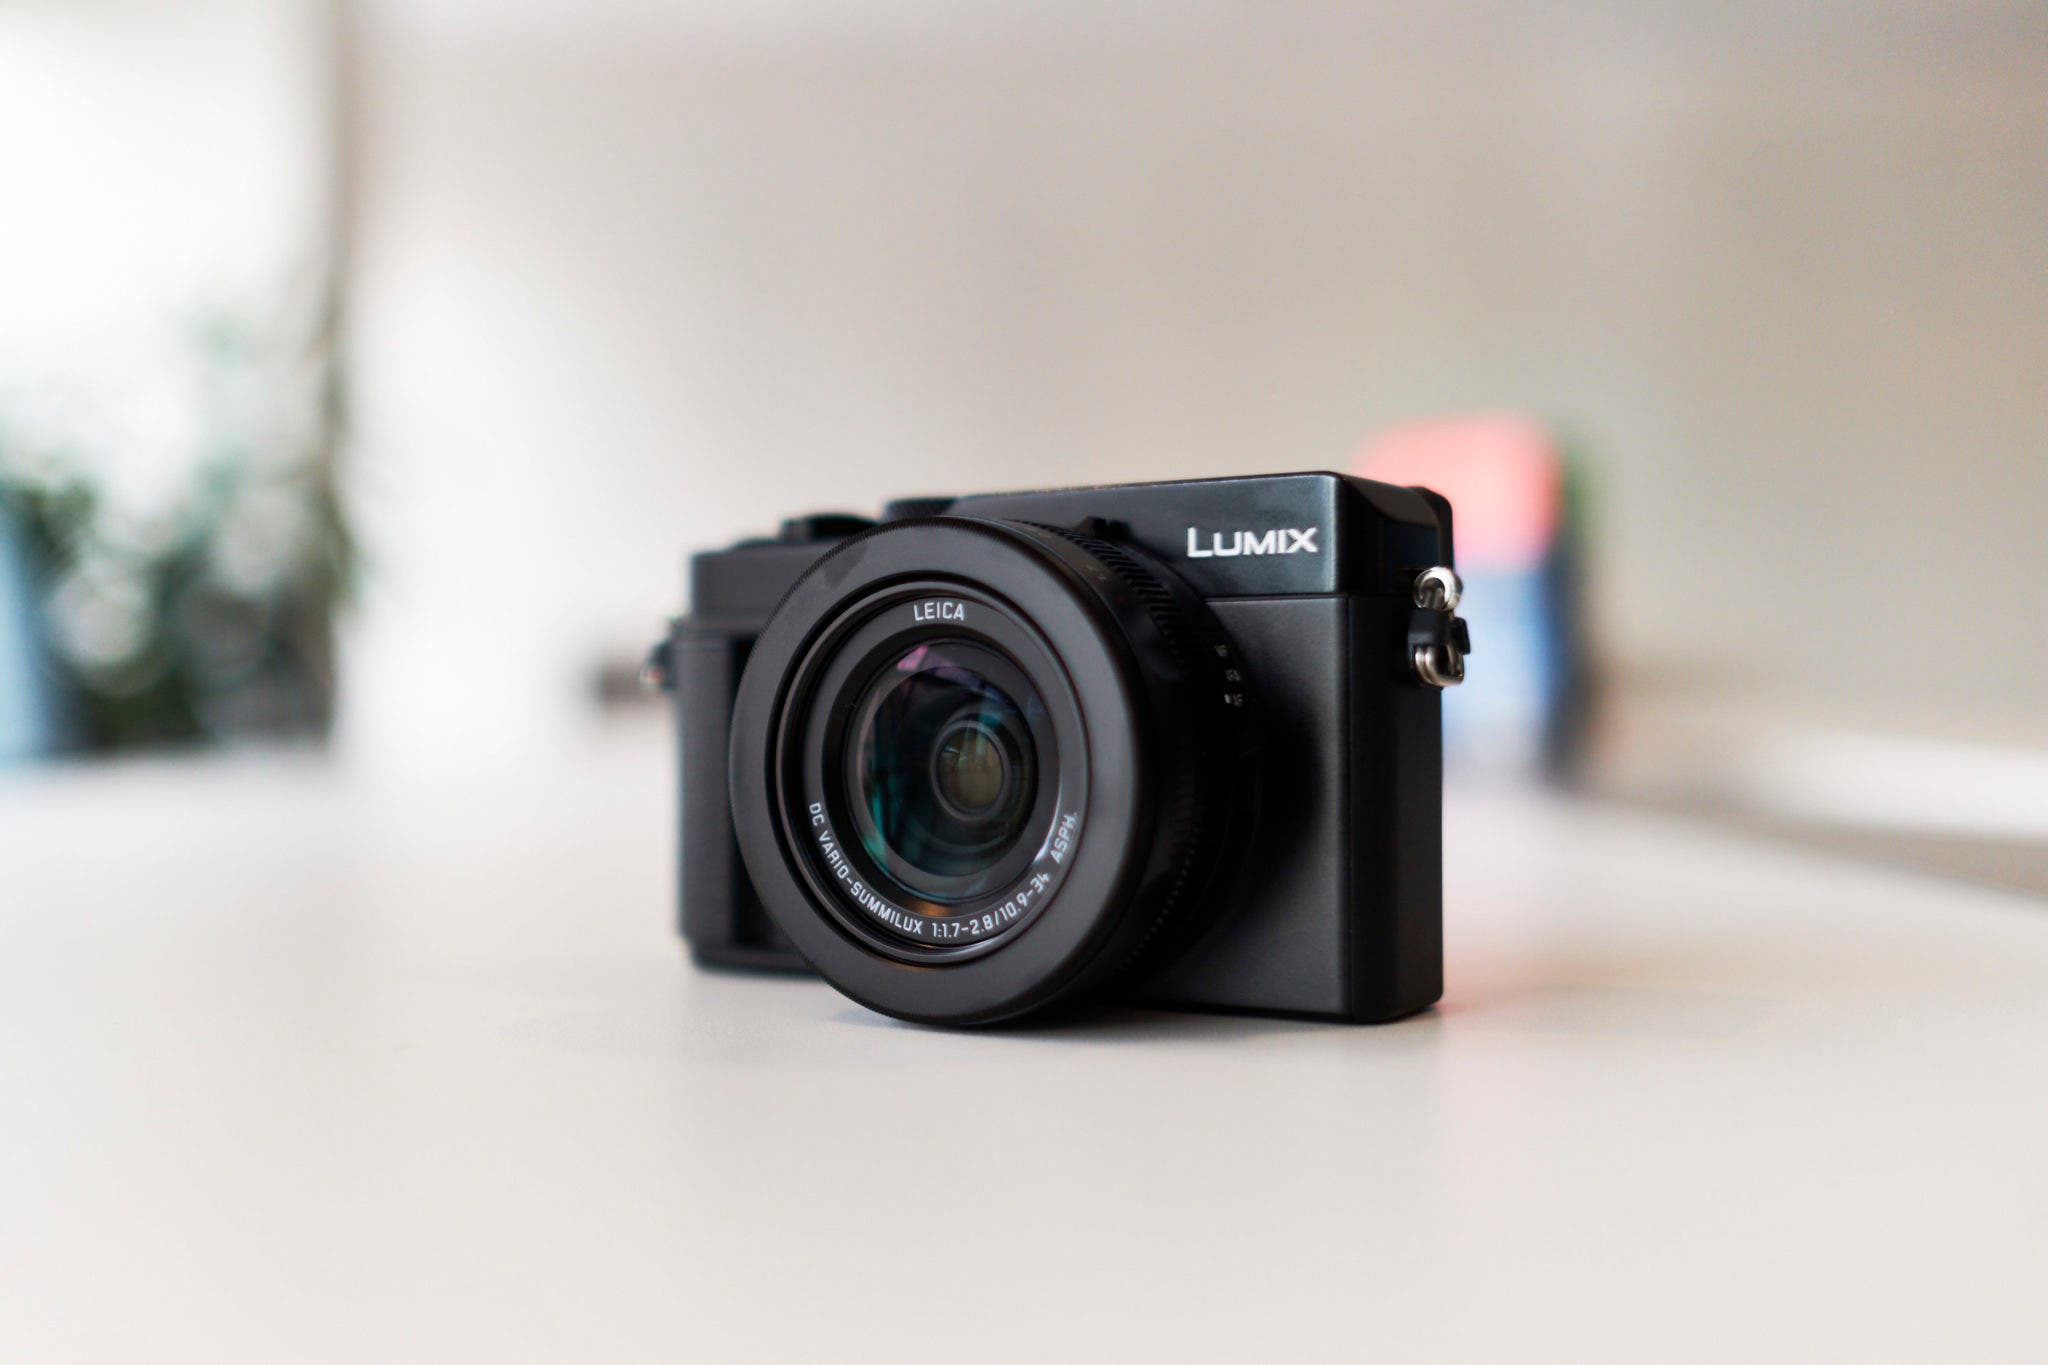 First Impressions: Panasonic LX1 II (Maybe the Best Cam for Street?)